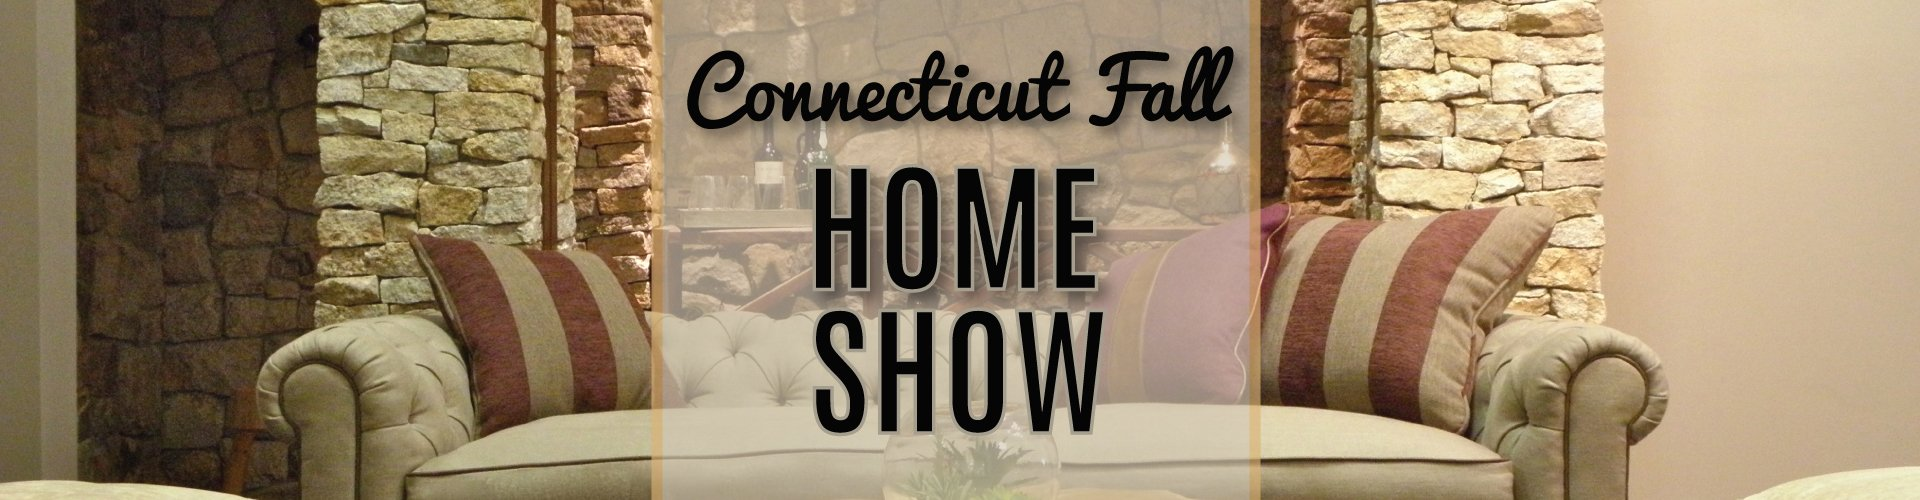 Fall Ct Home Show 2018 Connecticut Home Expo Jenks Productions